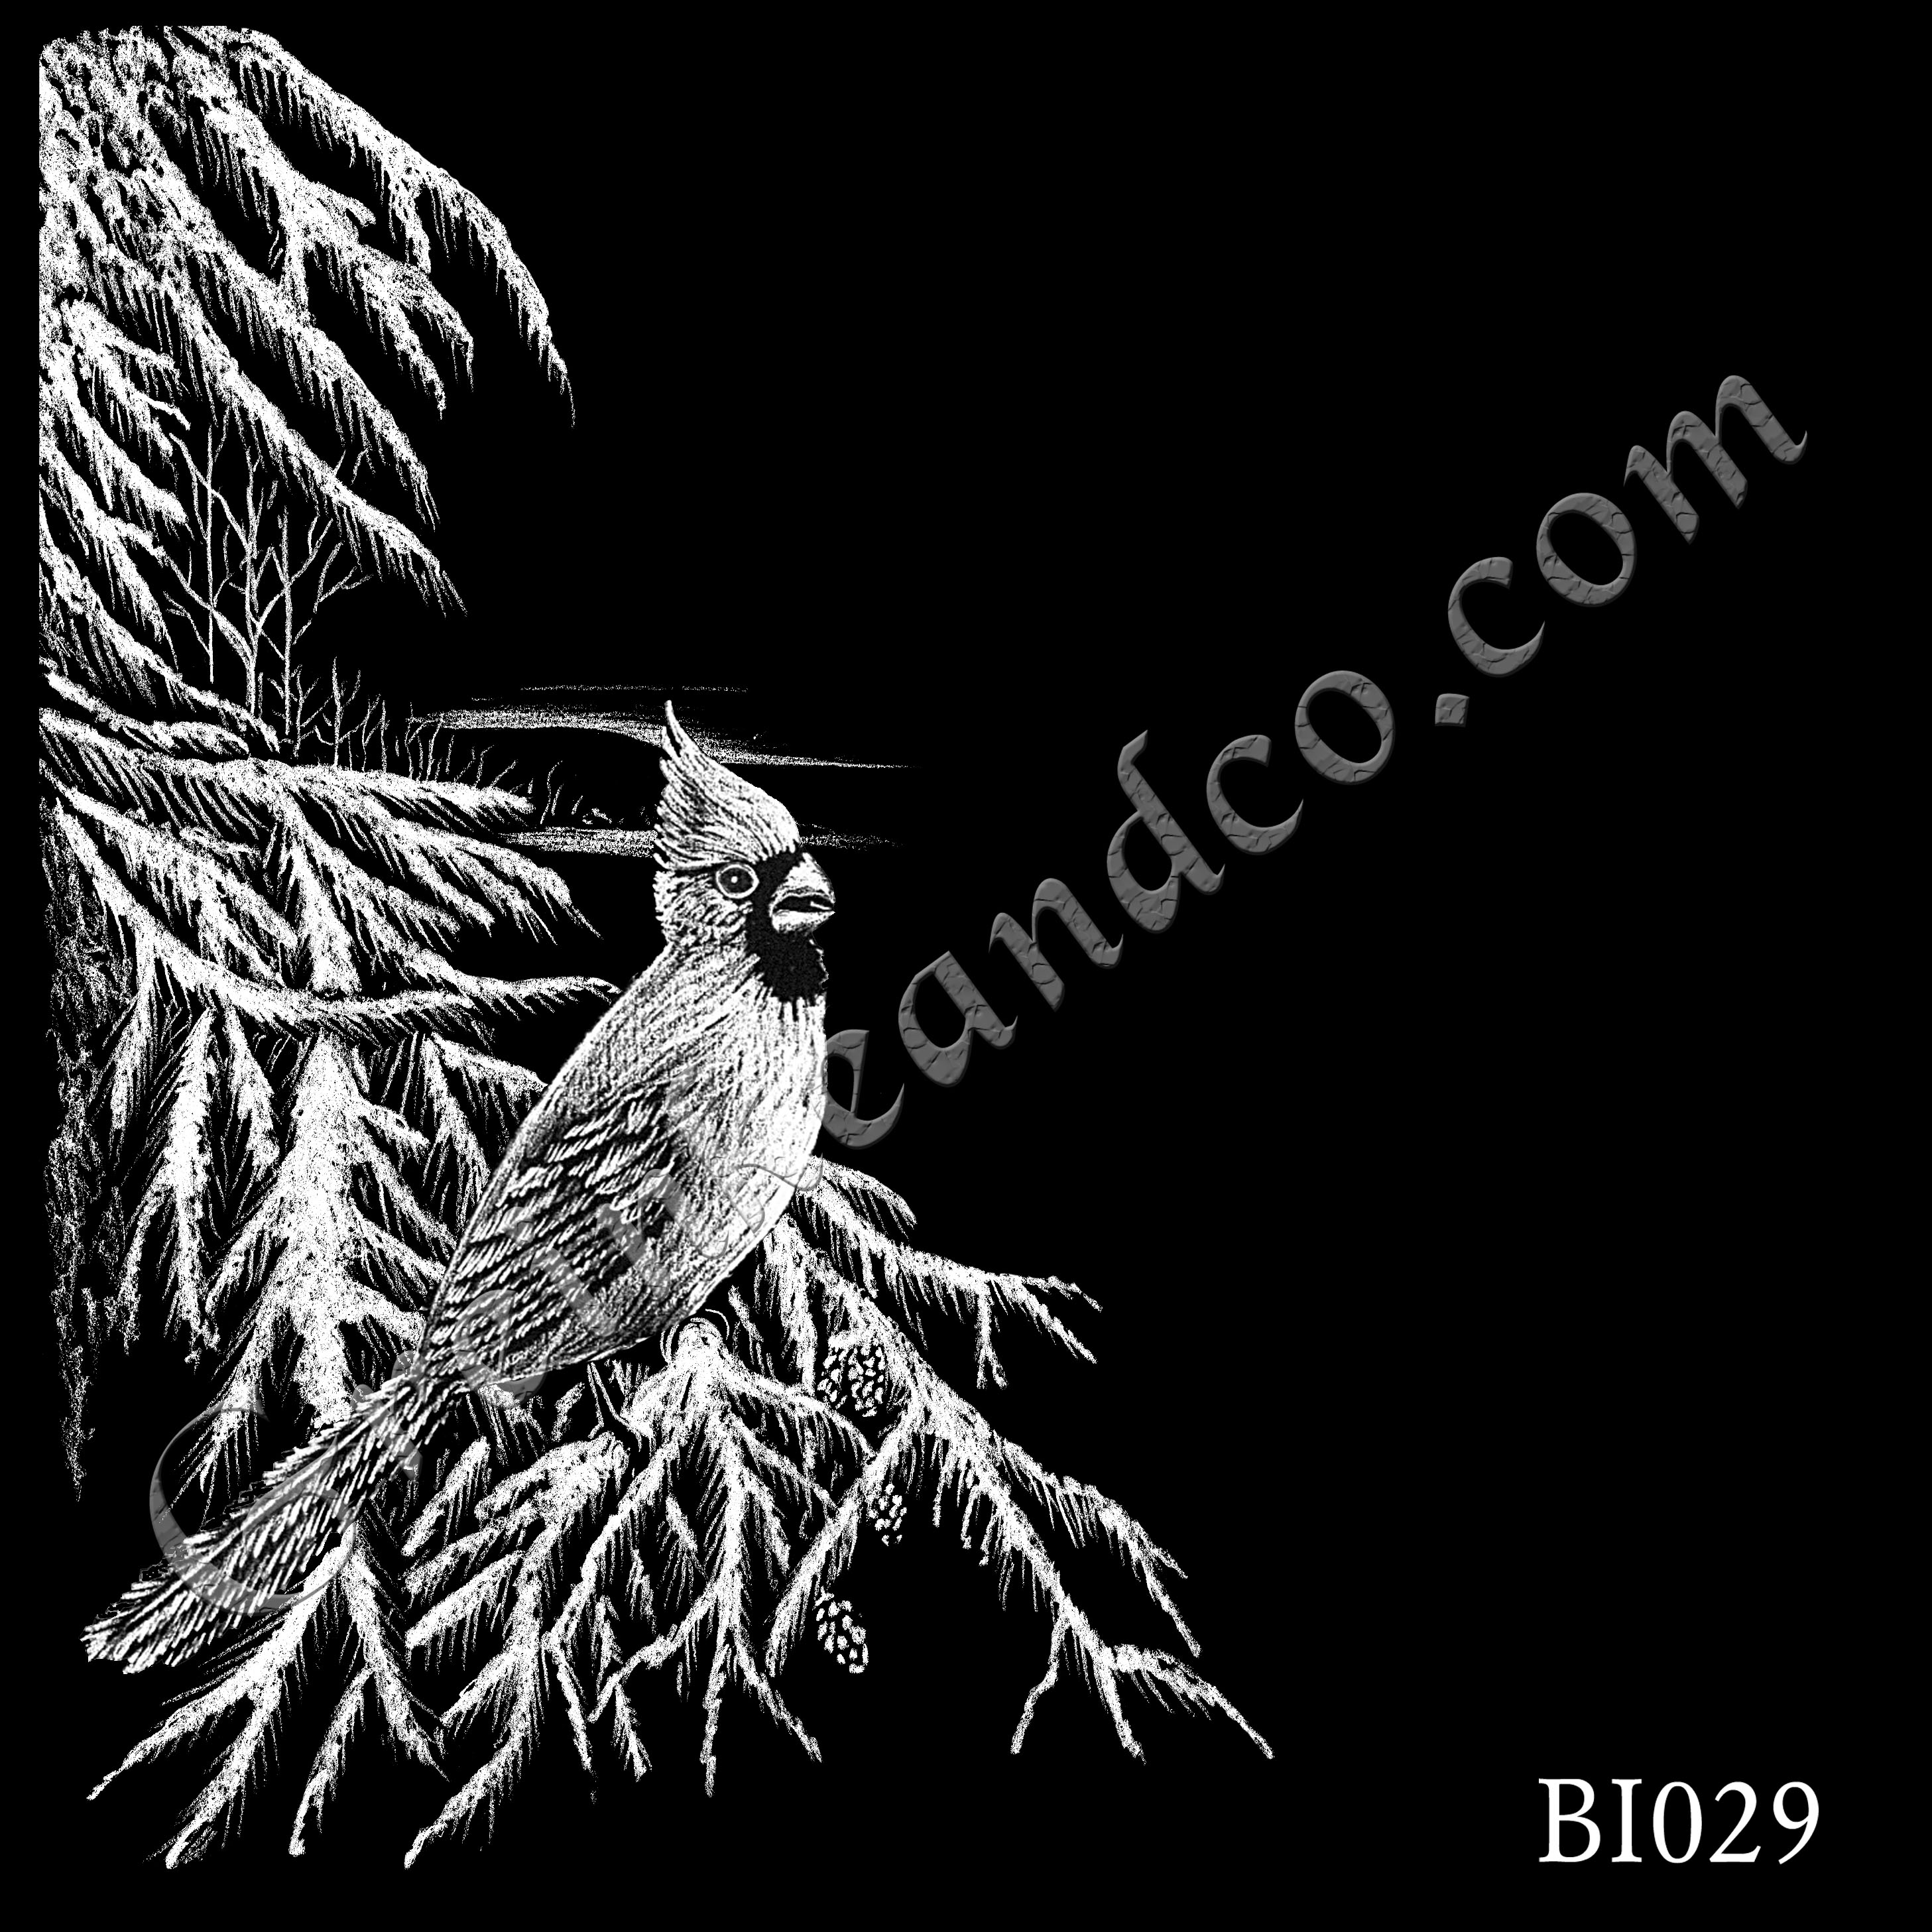 BI029 - Cardinal in Winter